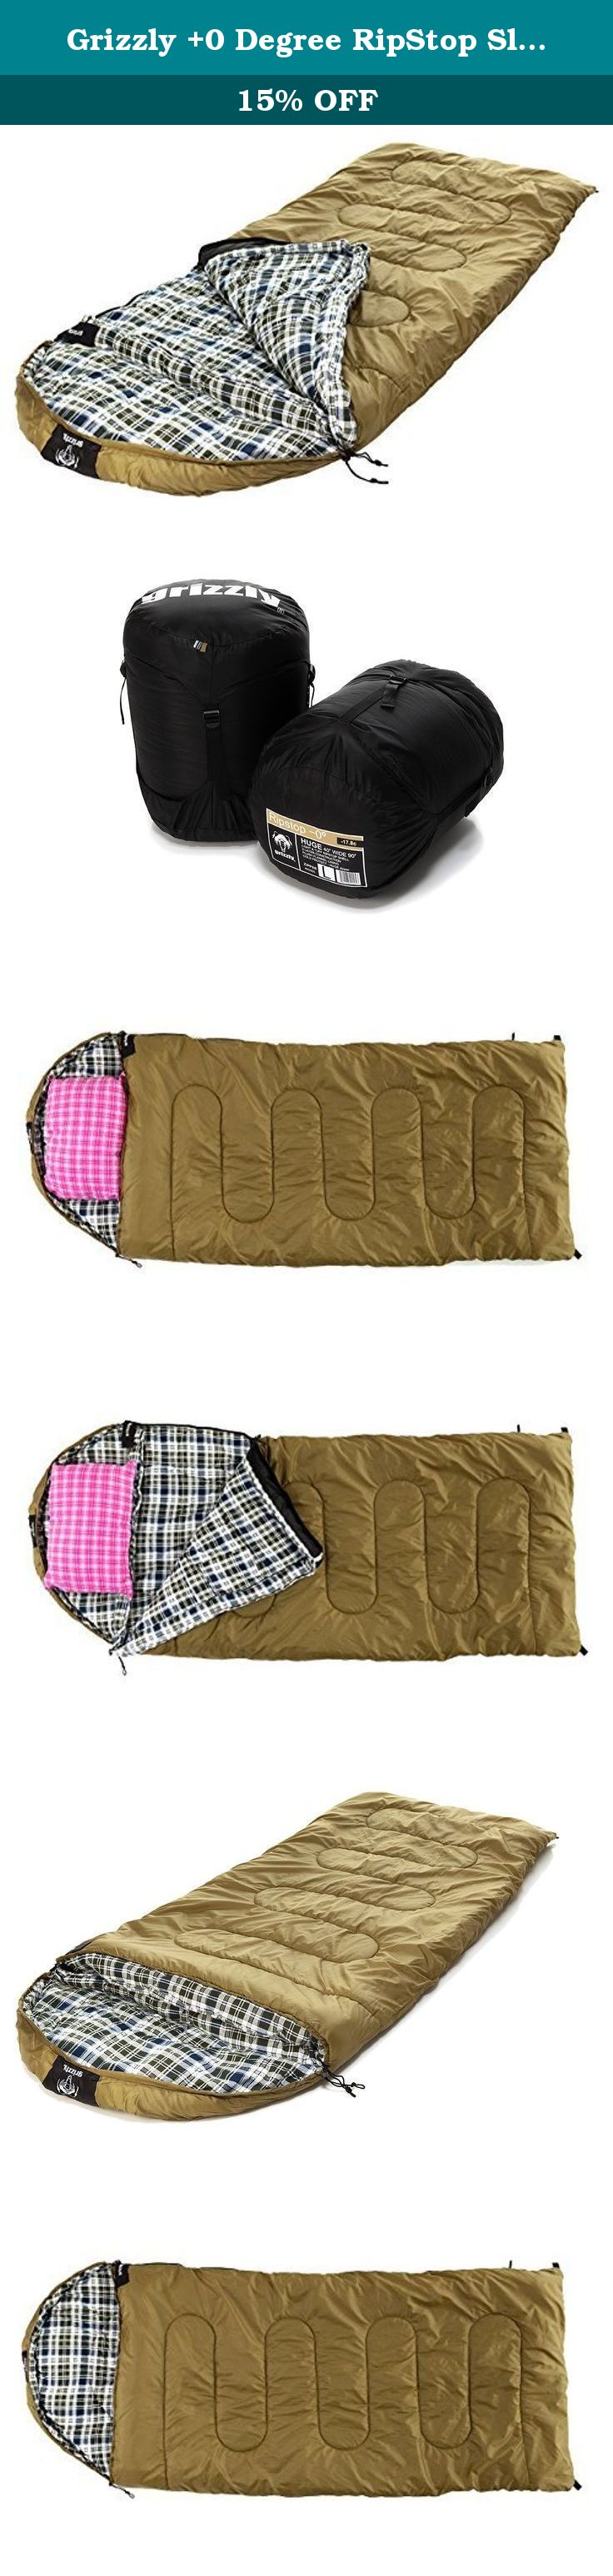 Grizzly +0 Degree RipStop Sleeping Bag (Olive). Comfortable, warm, and durable, this sleeping bag from Grizzly by Black Pine offers a roomy sleeping space for your next camping trip. It's available in three temperature ratings (-25-, 0-, and +25-degree) and in either cotton duck canvas or polyester ripstop exterior fabric. Both the cotton and ripstop models feature two-layer offset construction, ensuring the seams don't overlap to prevent cold spots. They're also designed with big draft...